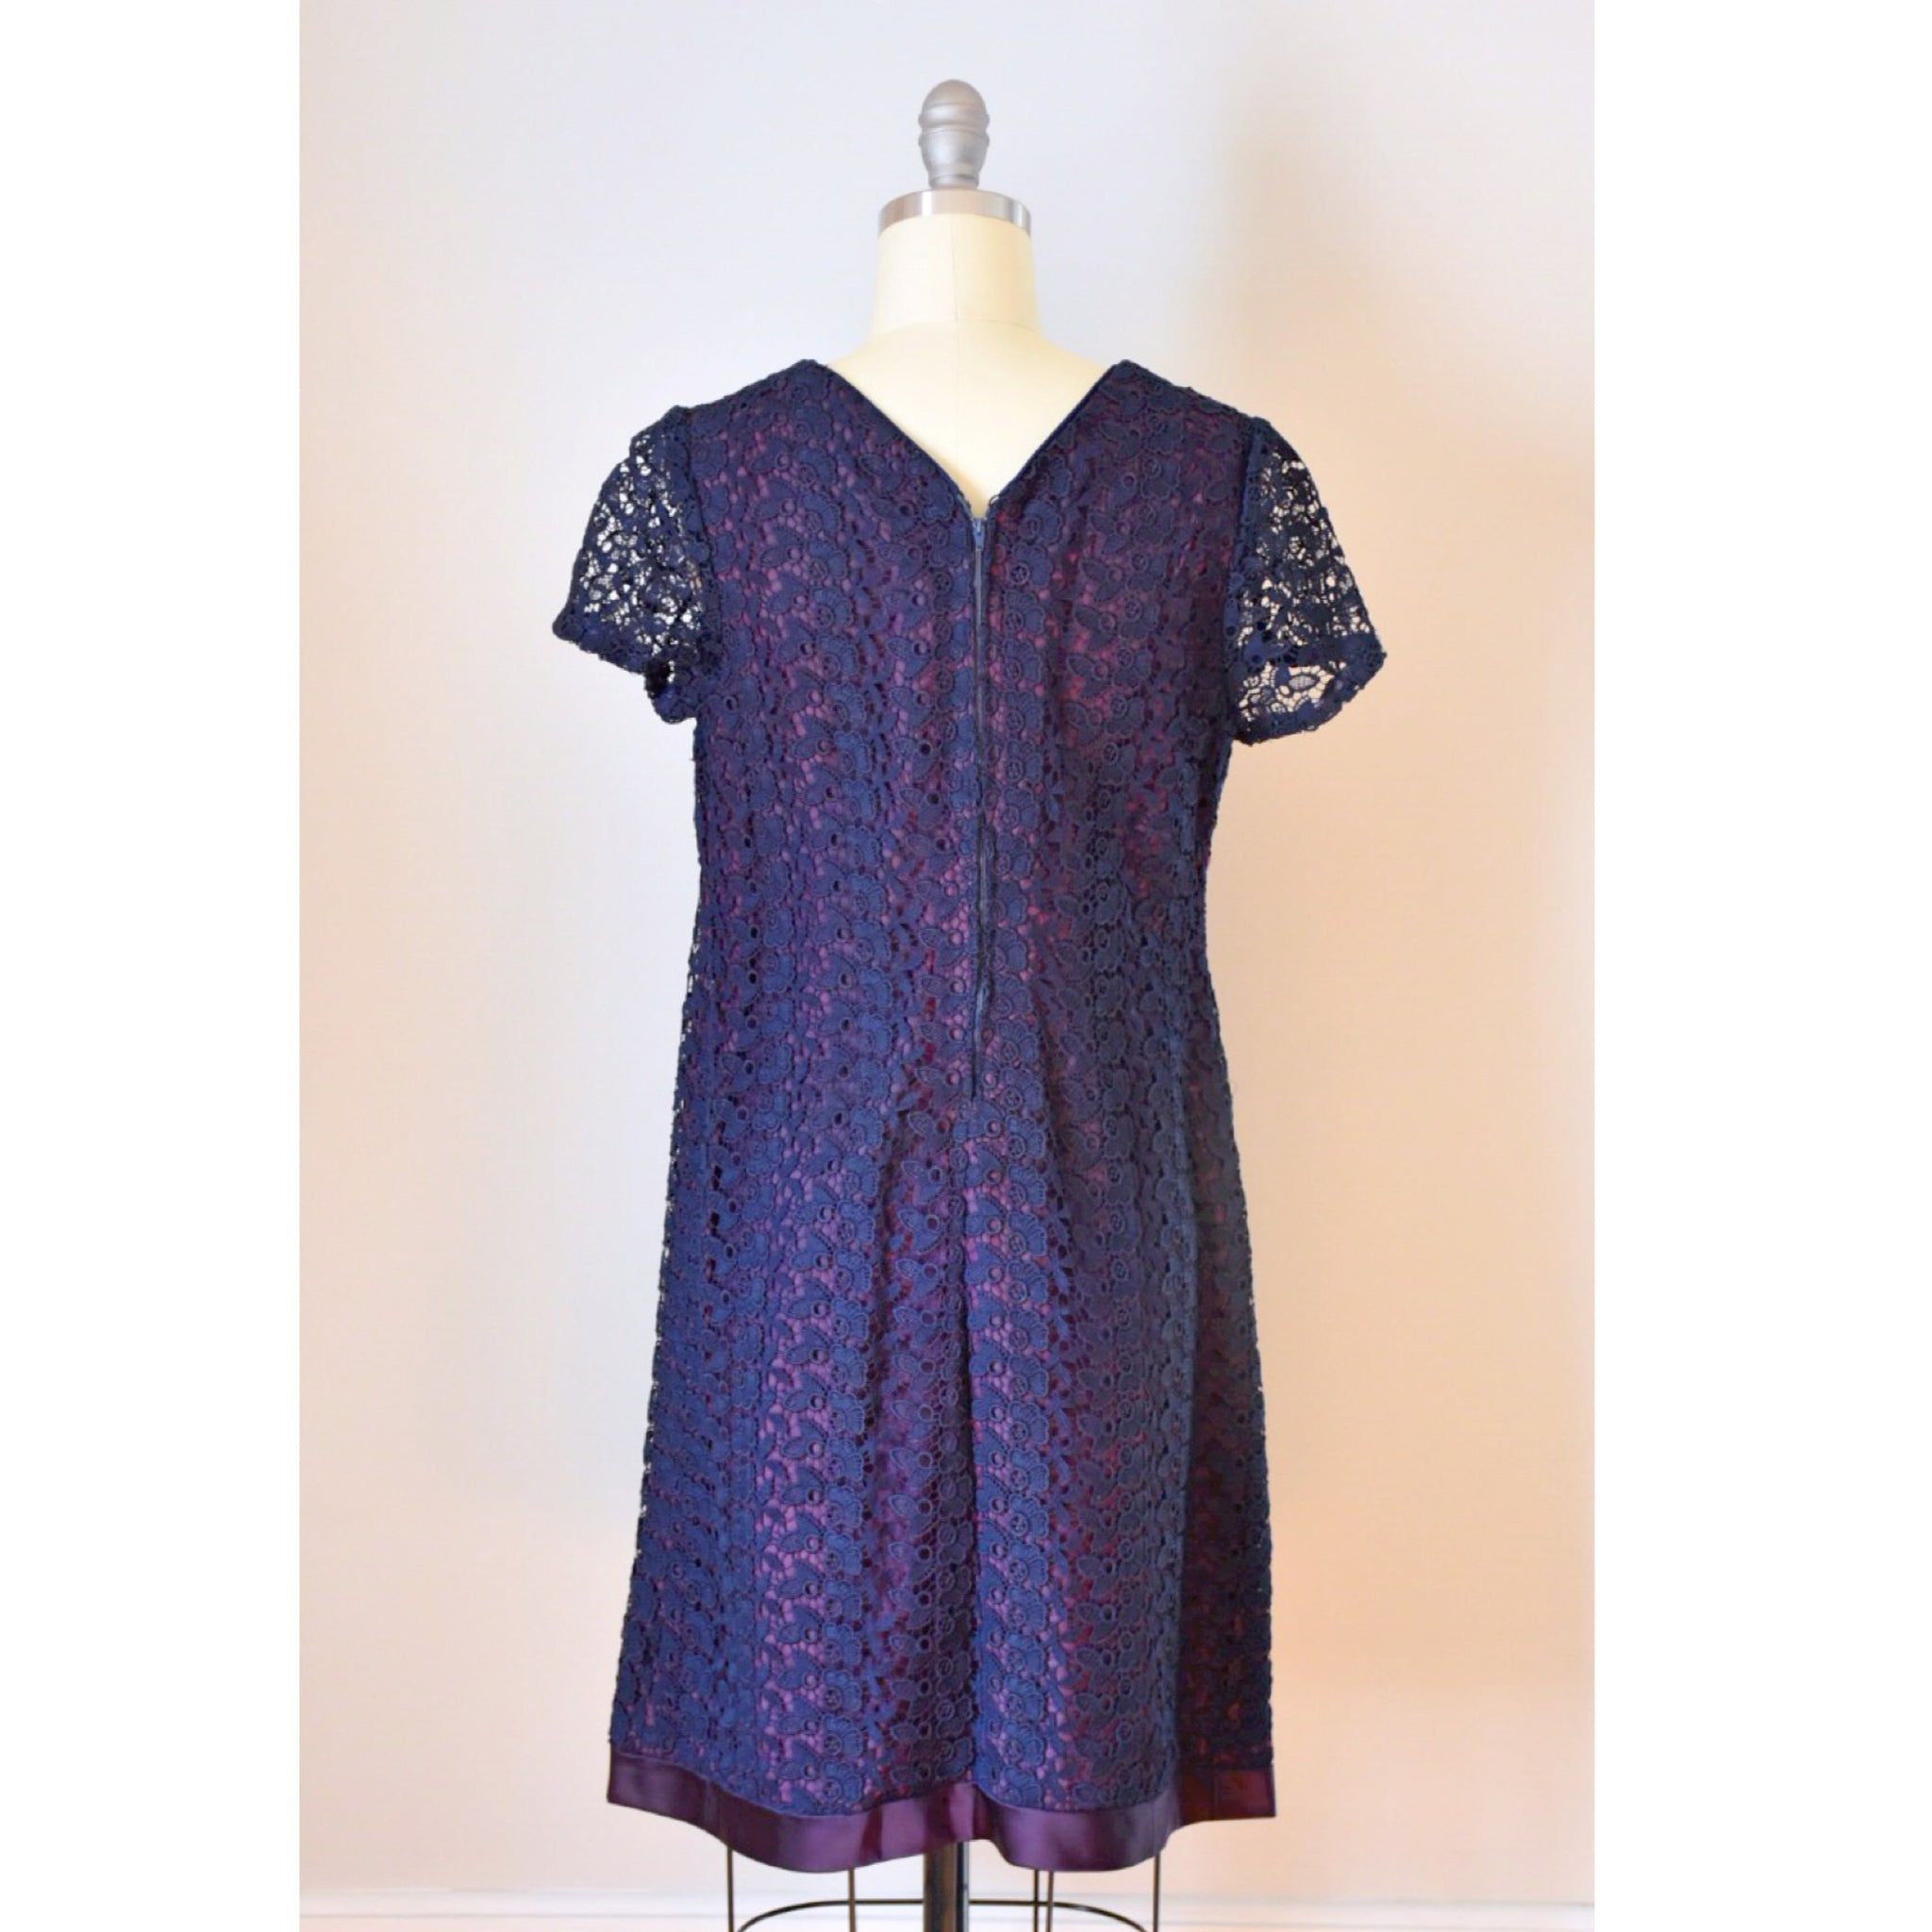 60s Crocheted Lace Dress